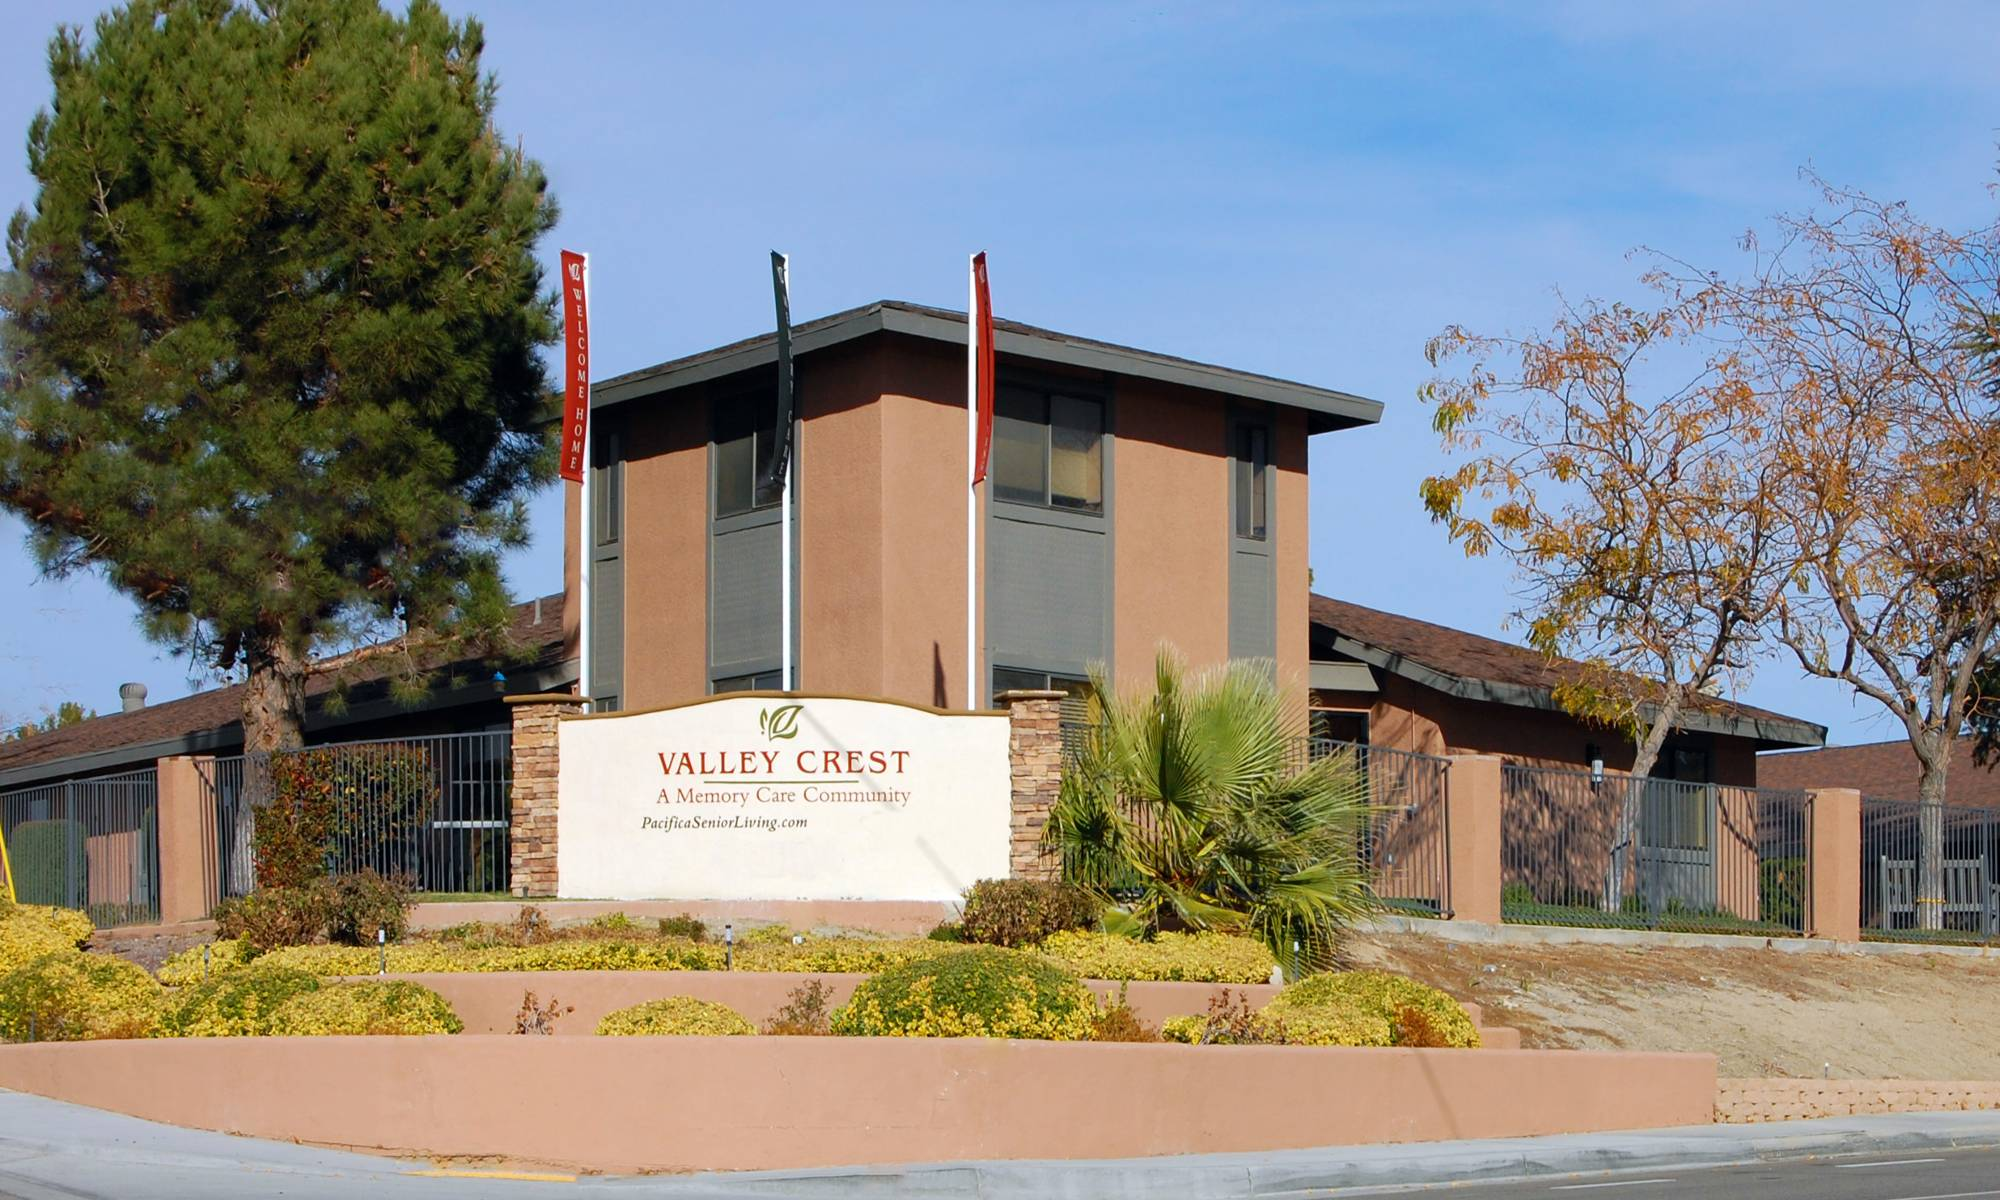 Main sign of Valley Crest Memory Care